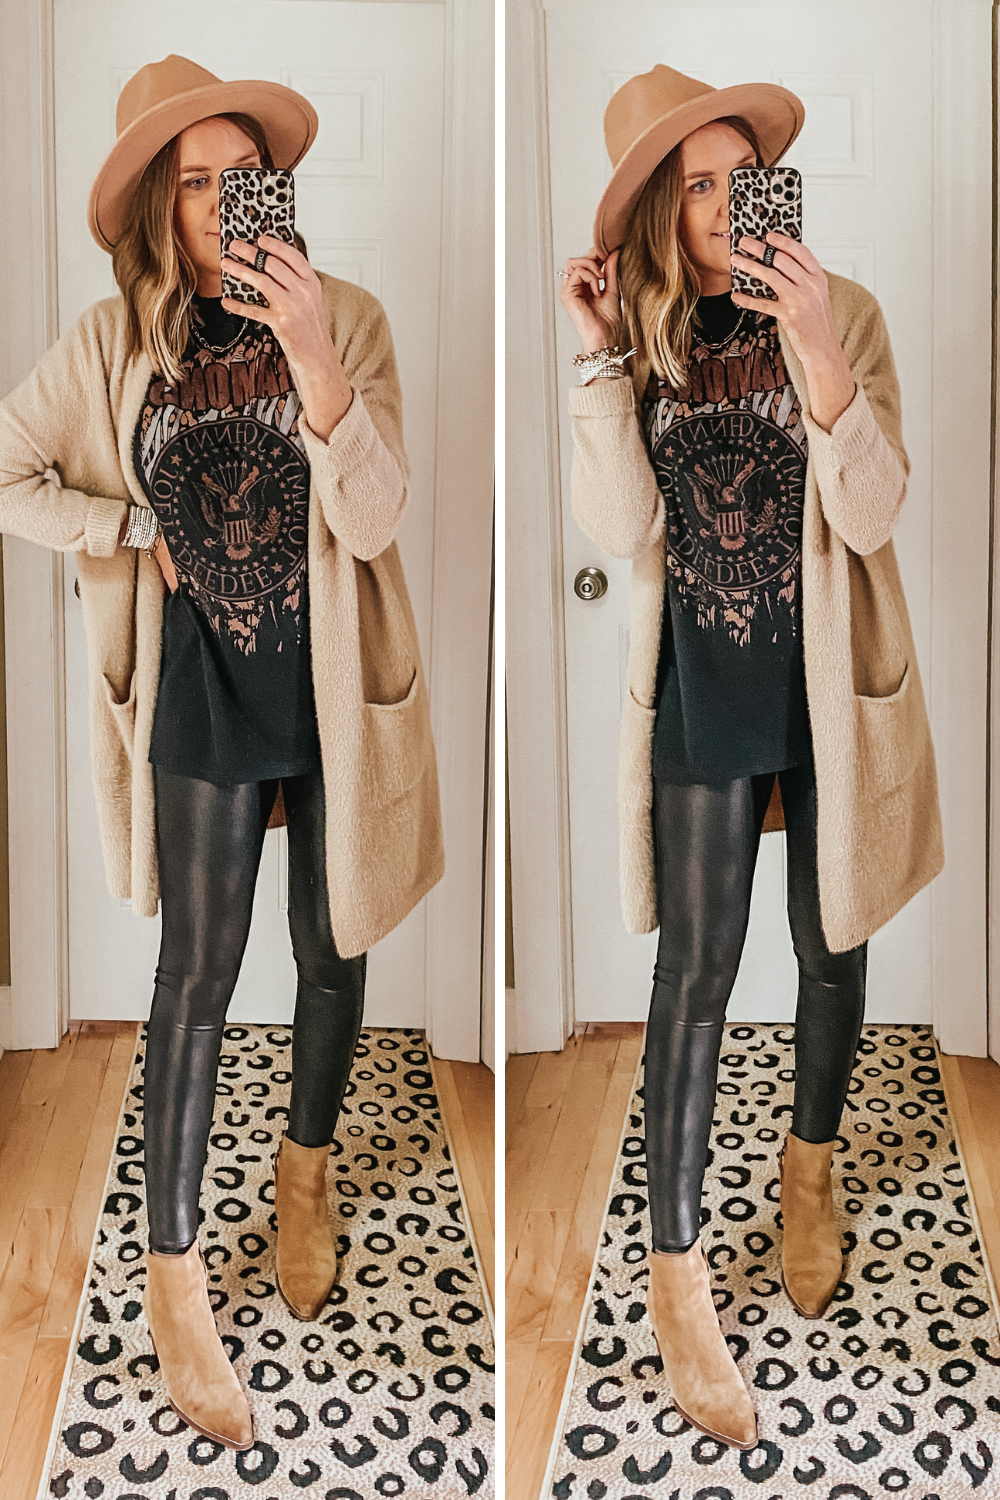 fall capsule wardrobe from Target, Target graphic tees spanx faux leather leggings dupes